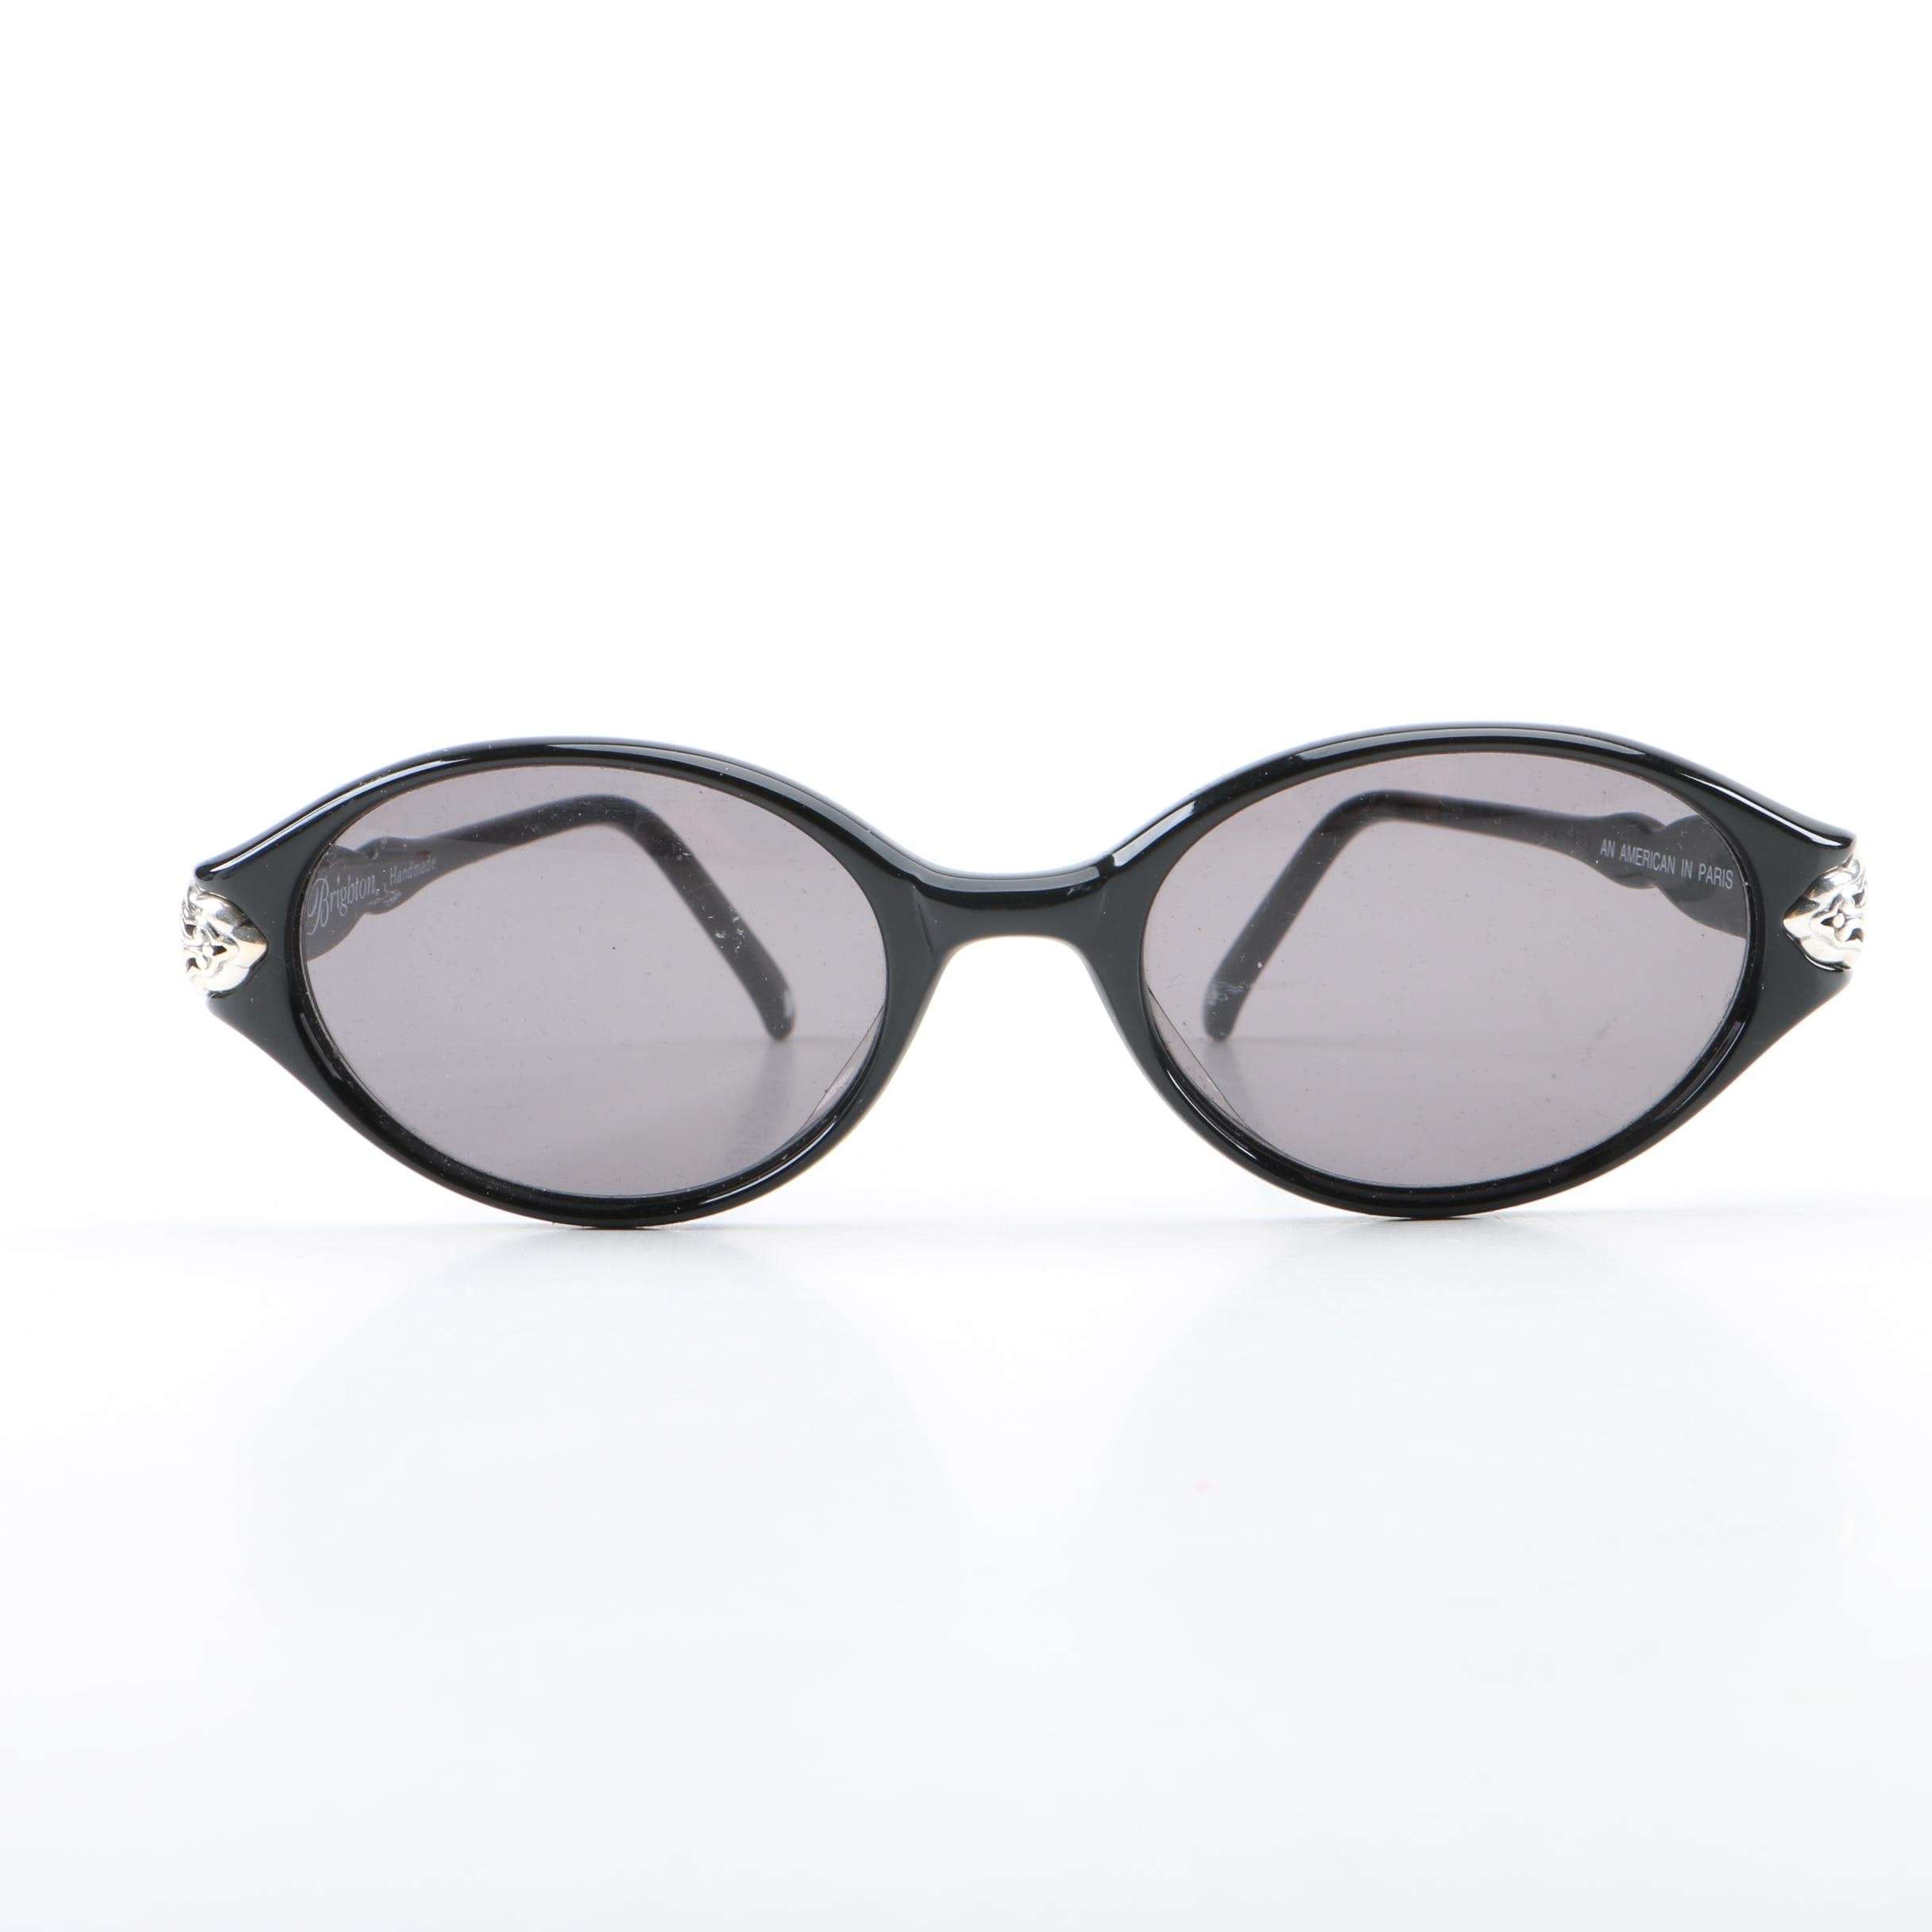 Brighton An American in Paris Handmade Sunglasses with Leather Case